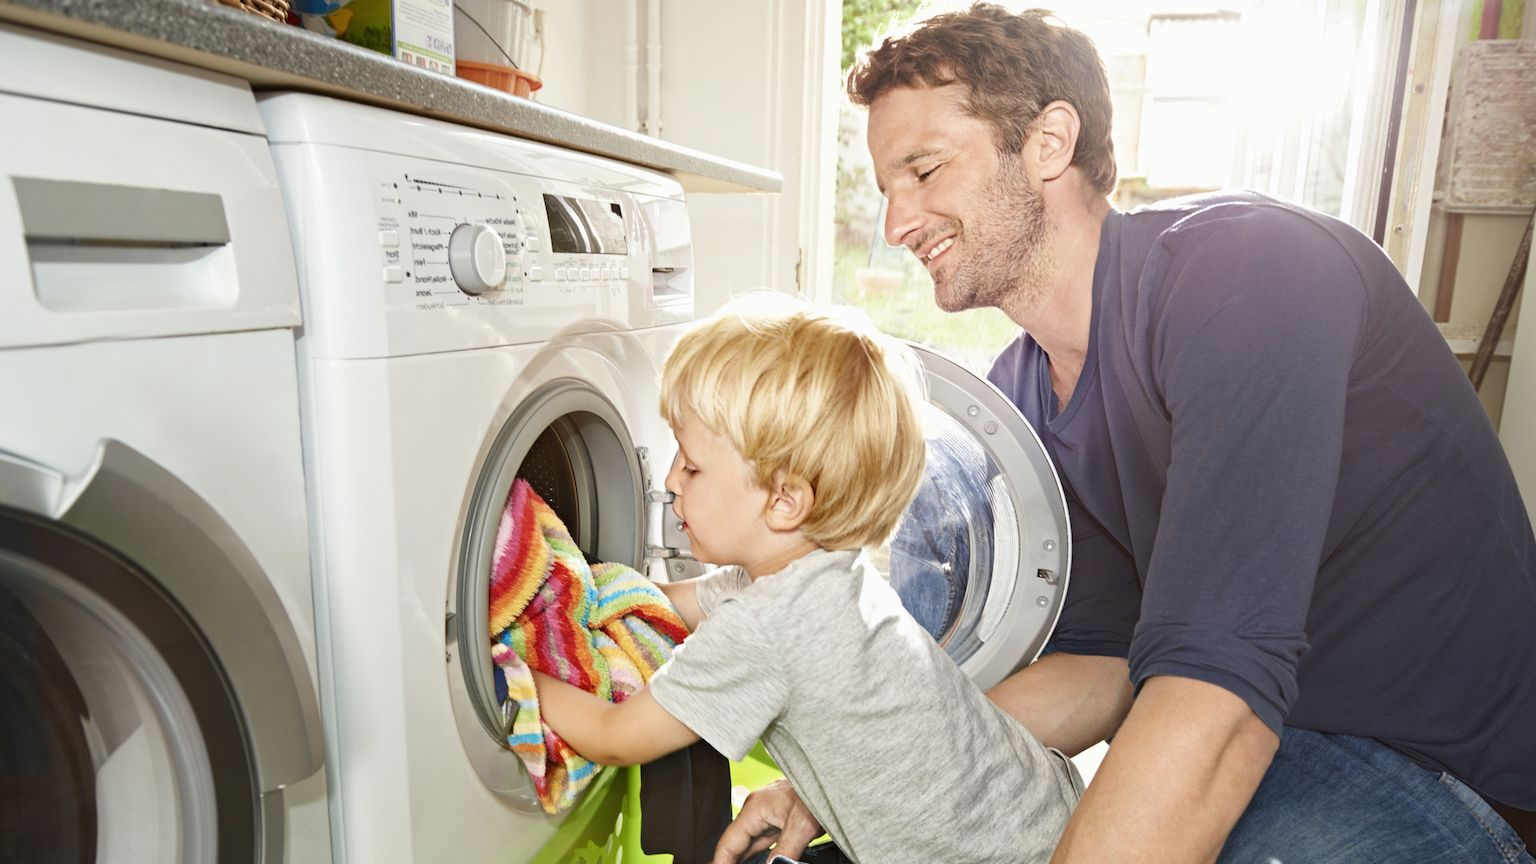 A man and his young son putting towels in their washing machine.